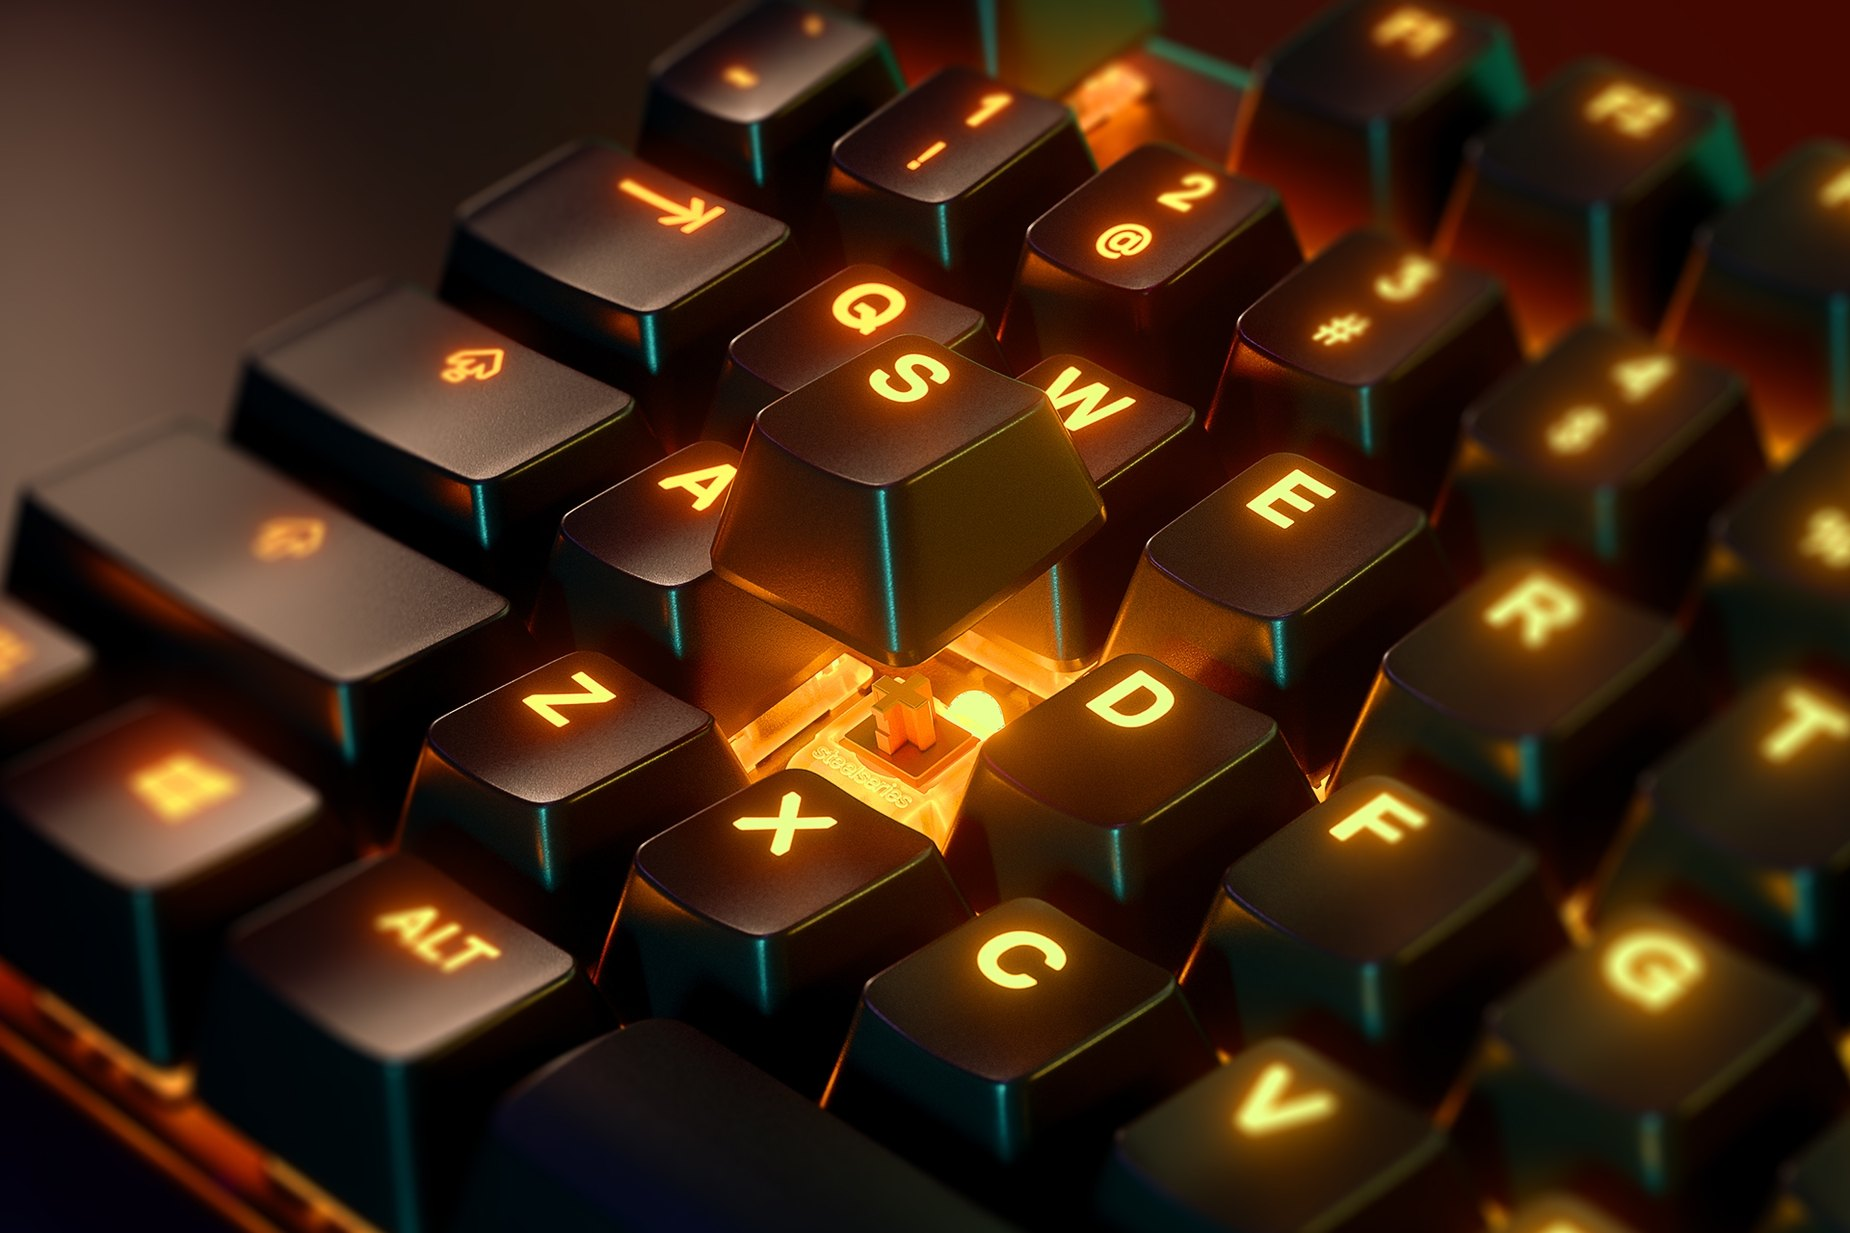 Zoomed in view of a single key on the US English - Apex 7 TKL (Brown Switch) gaming keyboard, the key is raised up to show the SteelSeries QX2 Mechanical RGB Switch underneath